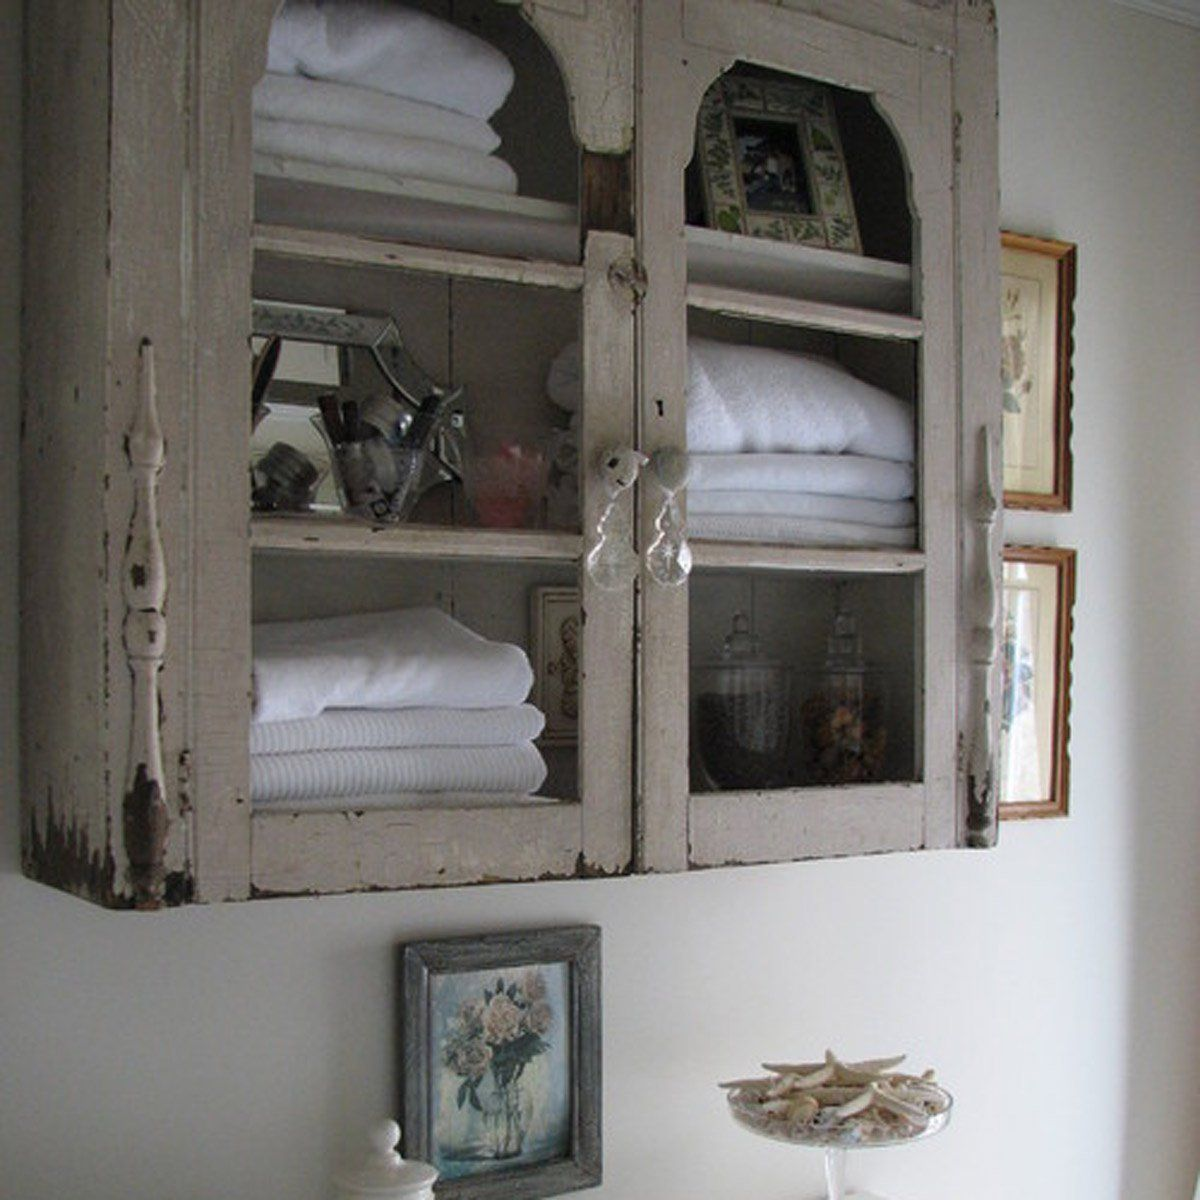 cabinet Furniture The Family Handyman - 8 Ways to Reuse ...